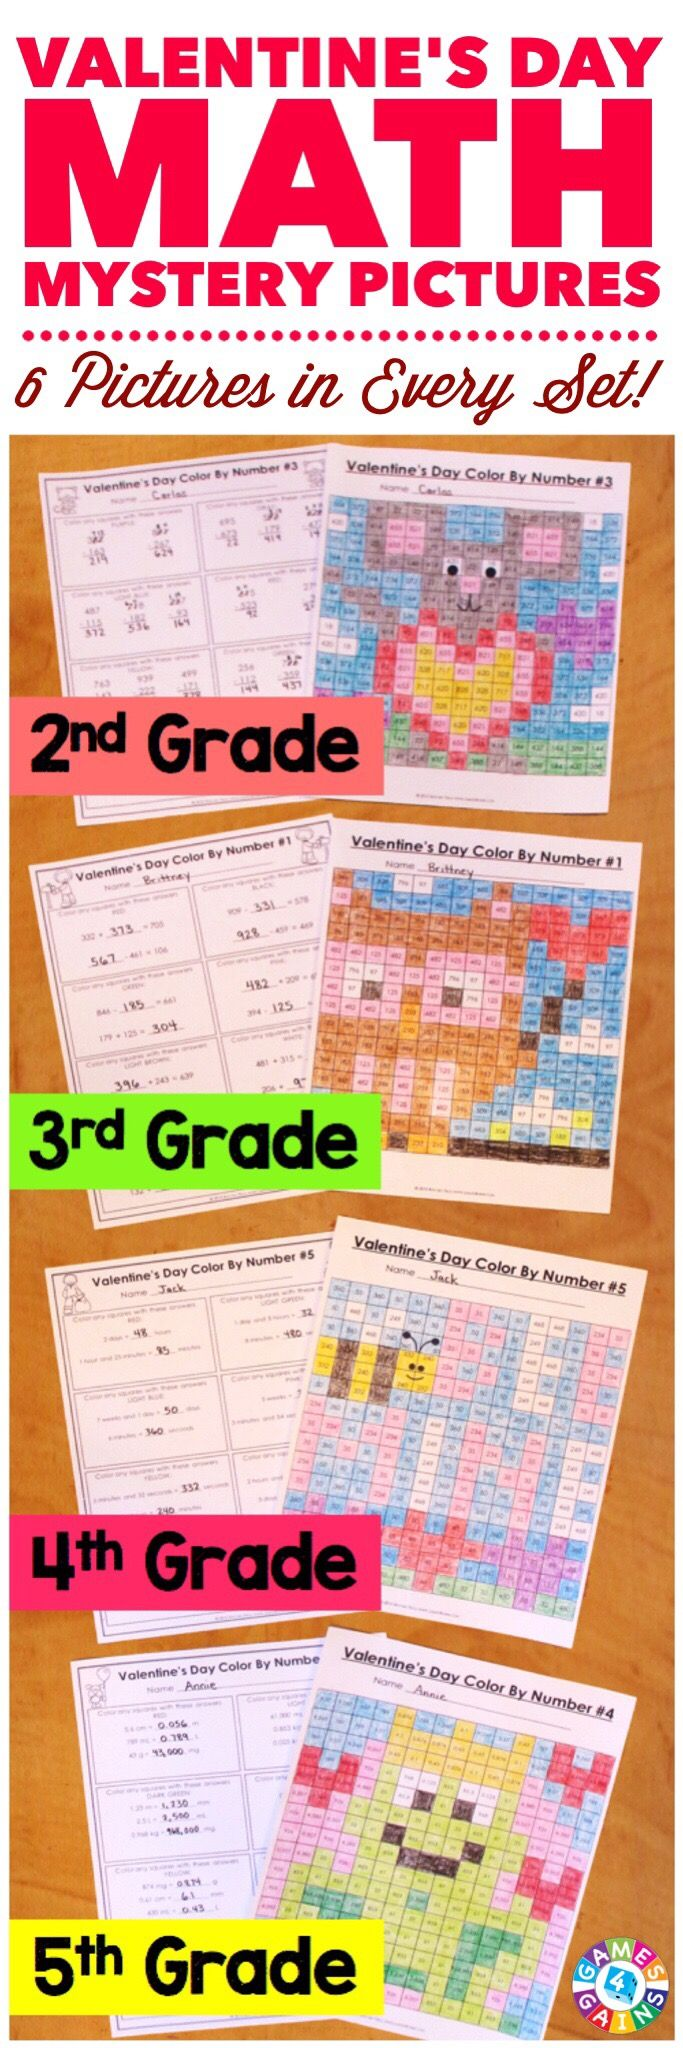 """My students LOVE these because they are fun to solve and color! I love them because it is a great review of the skills!"" These Valentine's Day Math Color by Number Activities are the perfect way to review key math skills taught so far this year. Each set comes with 6 different pictures, and each picture focuses on a different skill. Different versions available for 2nd, 3rd, 4th, and 5th grades."